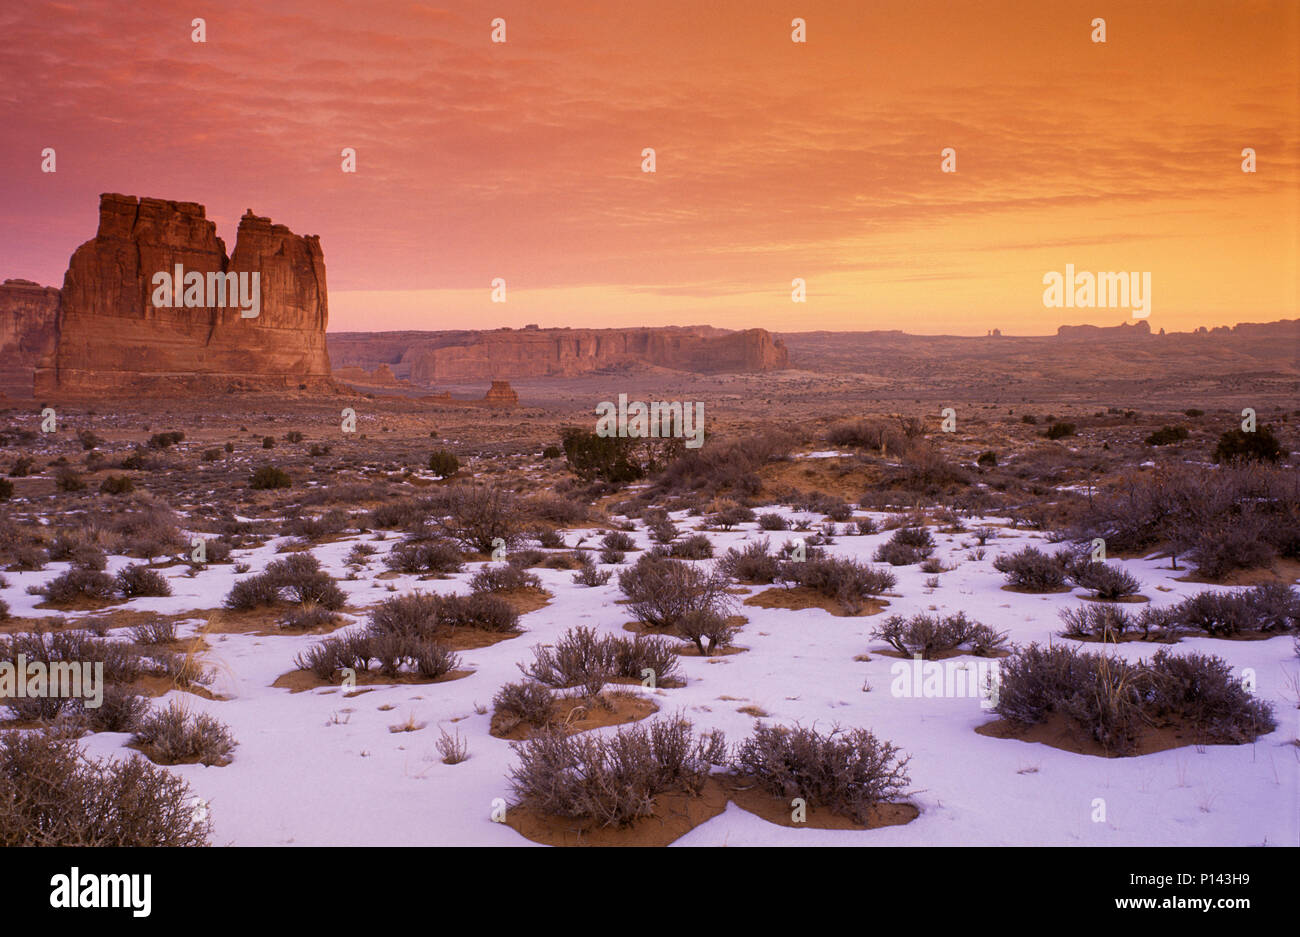 Arches National Park: near Moab, view of canyon and rock formations over snow covered desert at dawn with cloudscape, Utah, USA Stock Photo